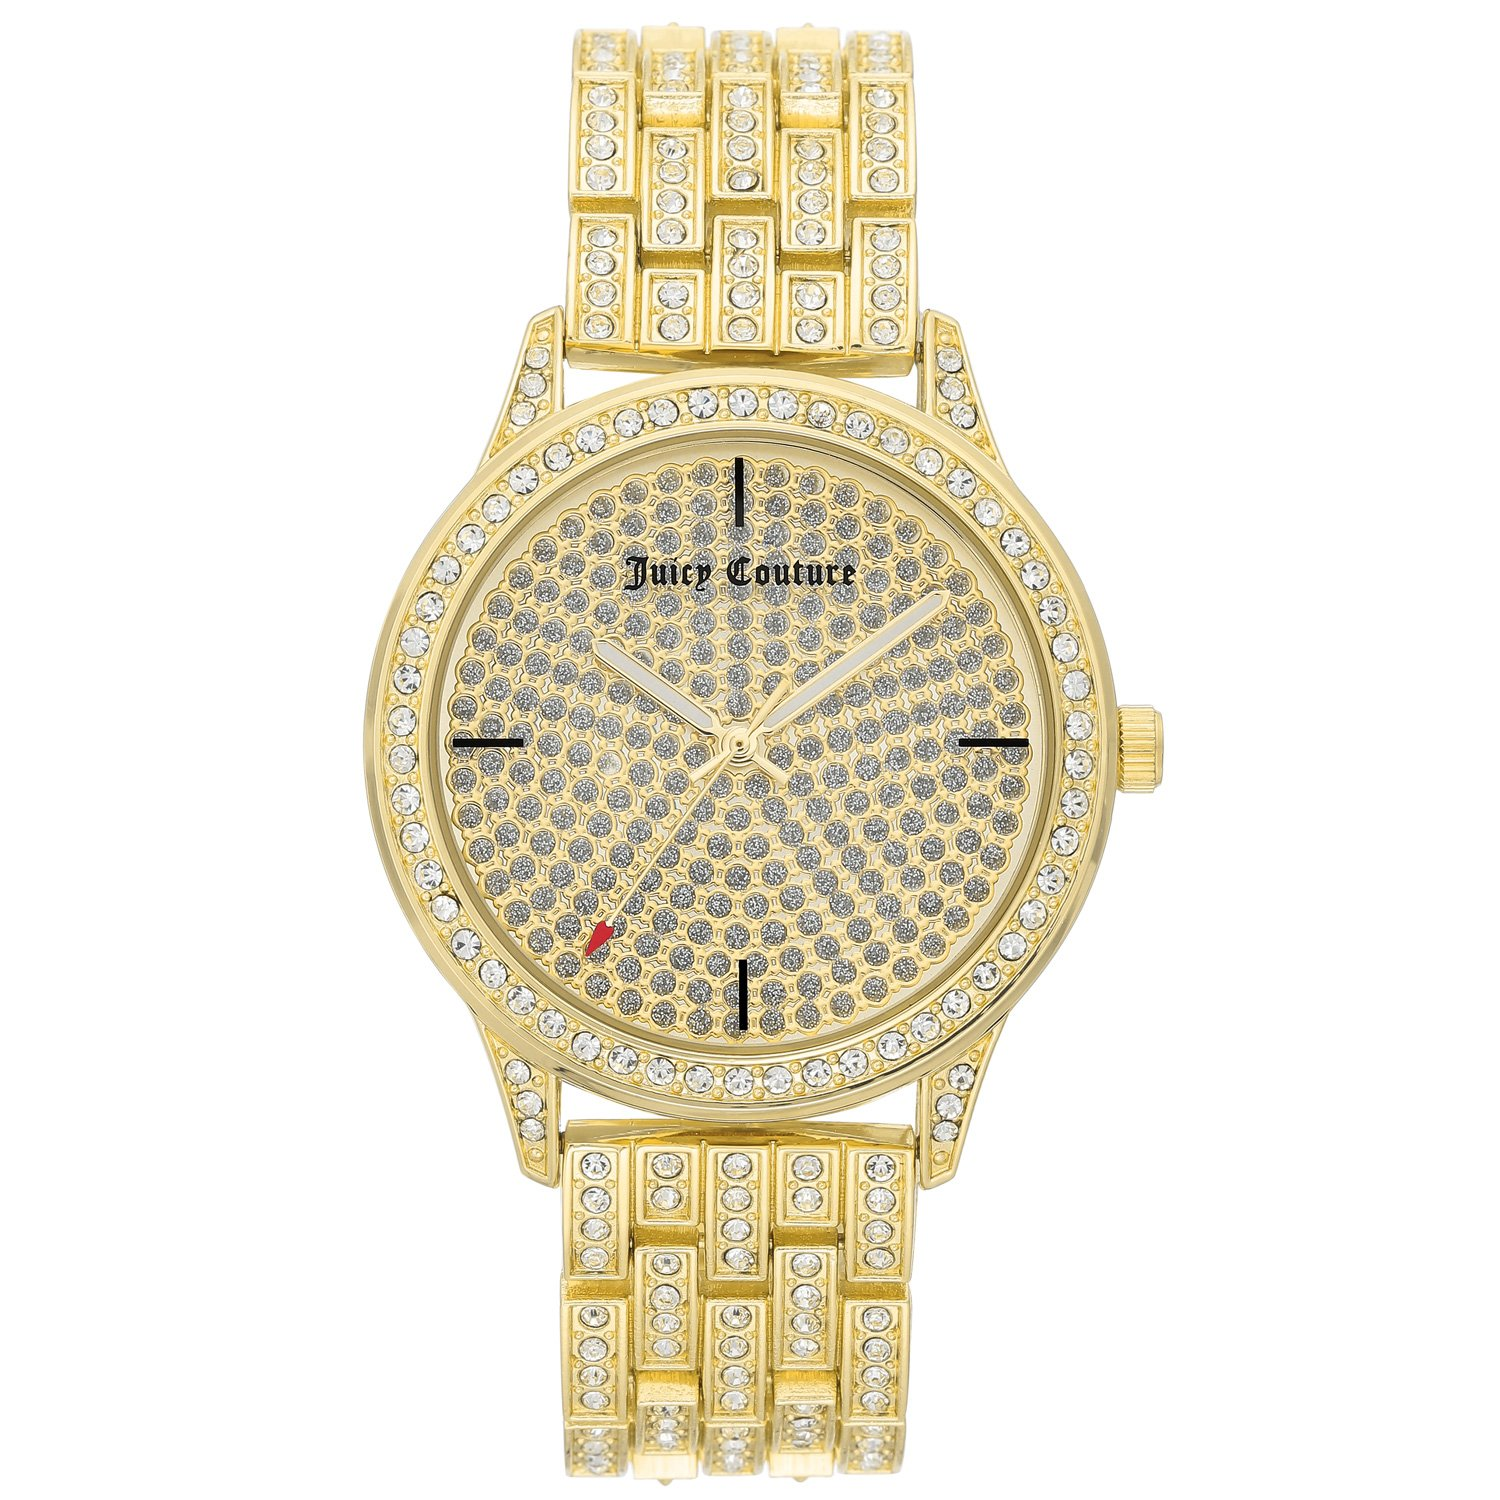 Juicy Couture Women's Watch Gold JC/1138PVGB